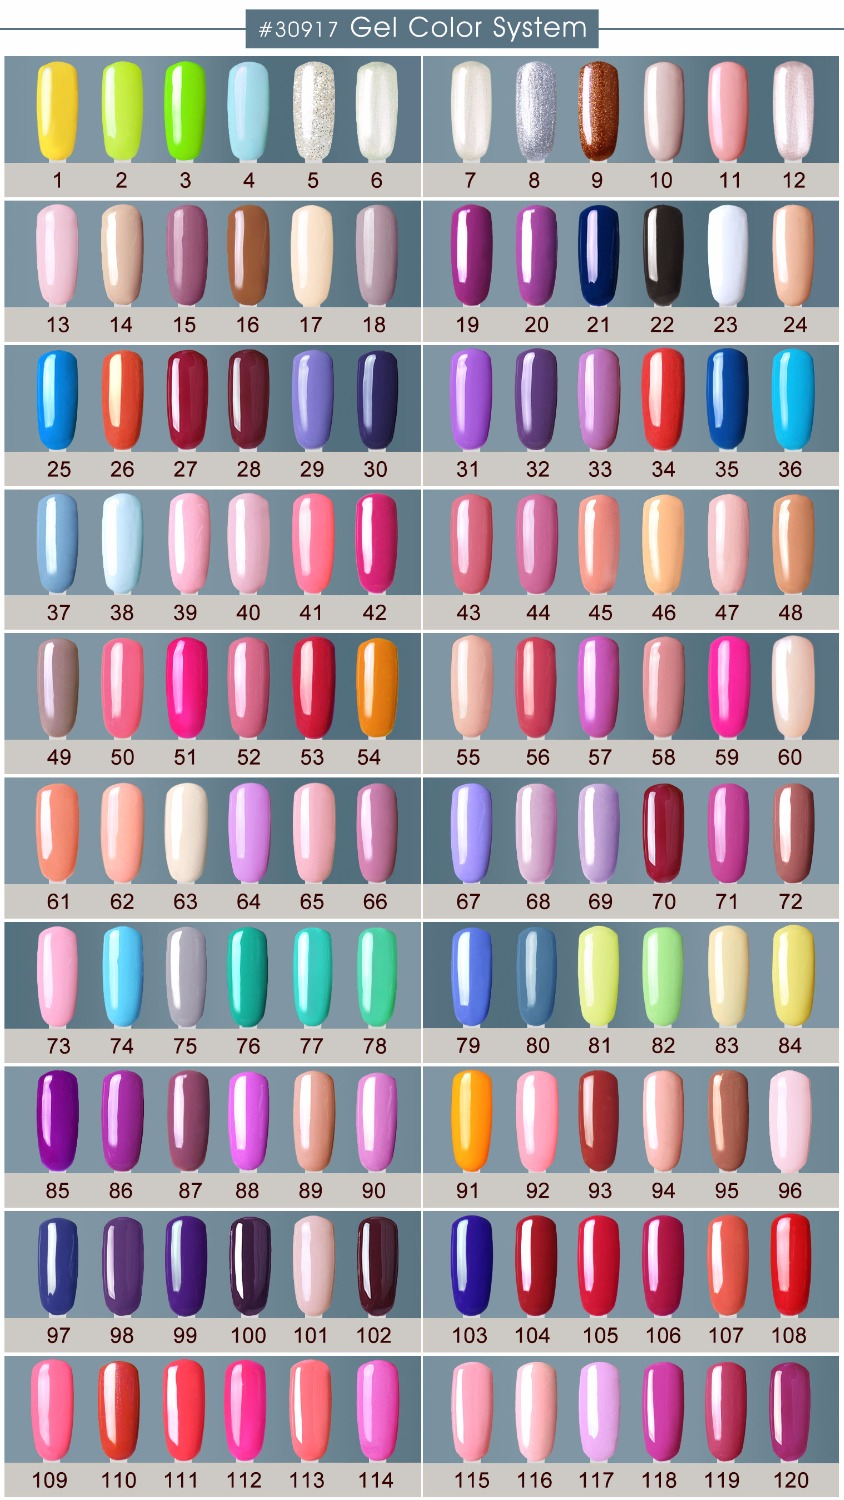 Canni uv gel polish 73ml 240 colors 001 024 solid color bottle canni uv gel polish 73ml 240 colors 001 024 solid color bottle high quality hottest sale 30917 soak off uv led gel nail polish in nail gel from beauty geenschuldenfo Gallery